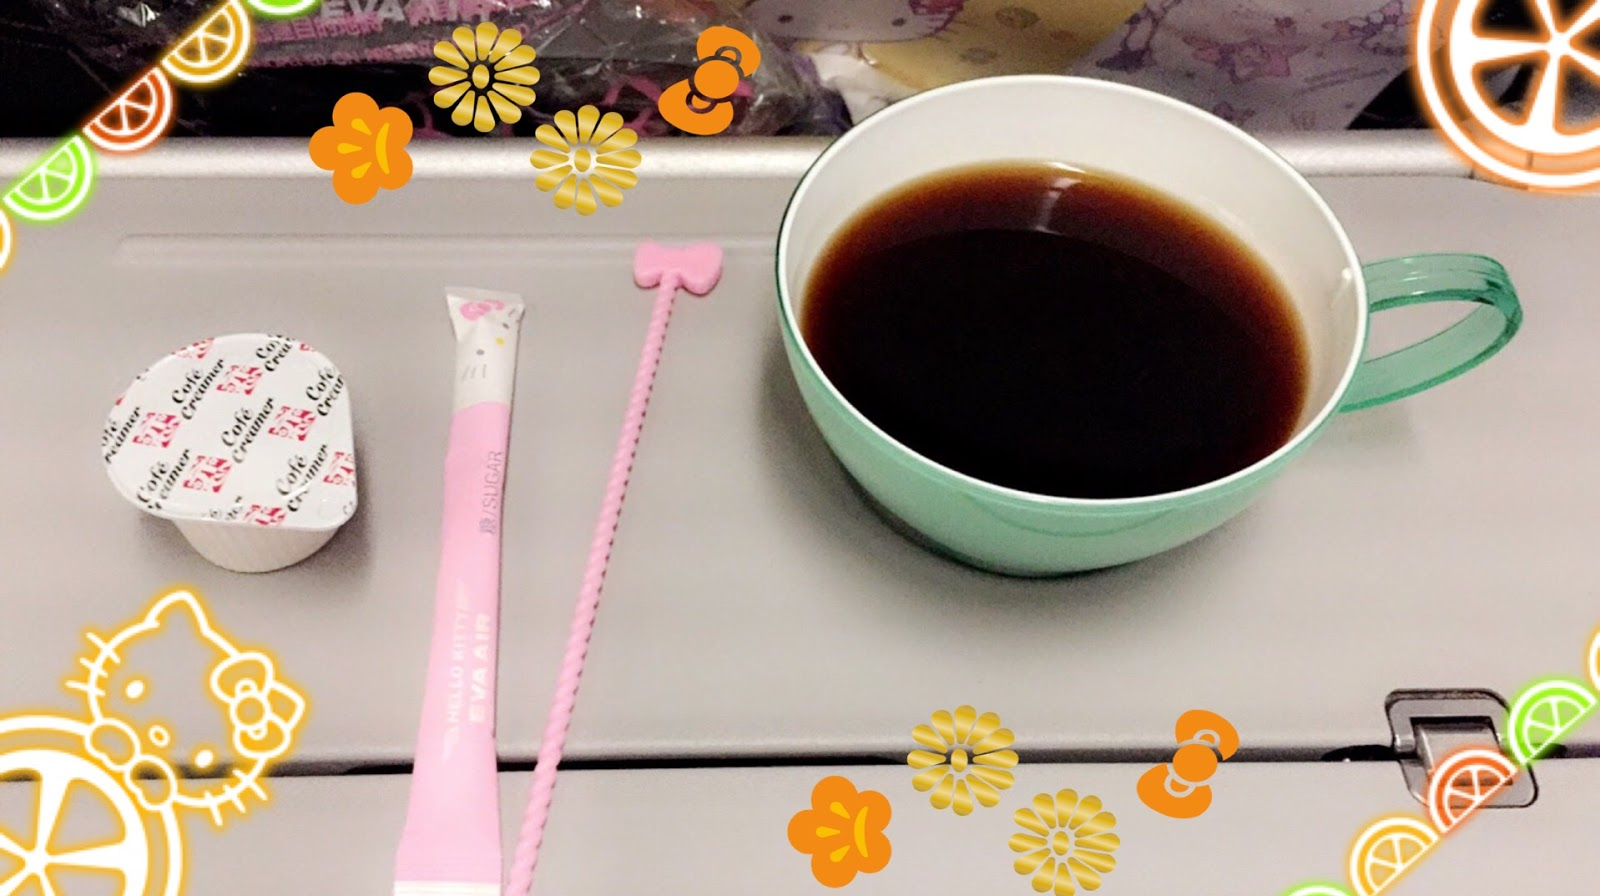 A Sip Of Your Coffee Or Tea Eating With The Colorful Utensils Cleaning Up Cooling Wet Napkin All Amenities Are Embellished Hello Kitty